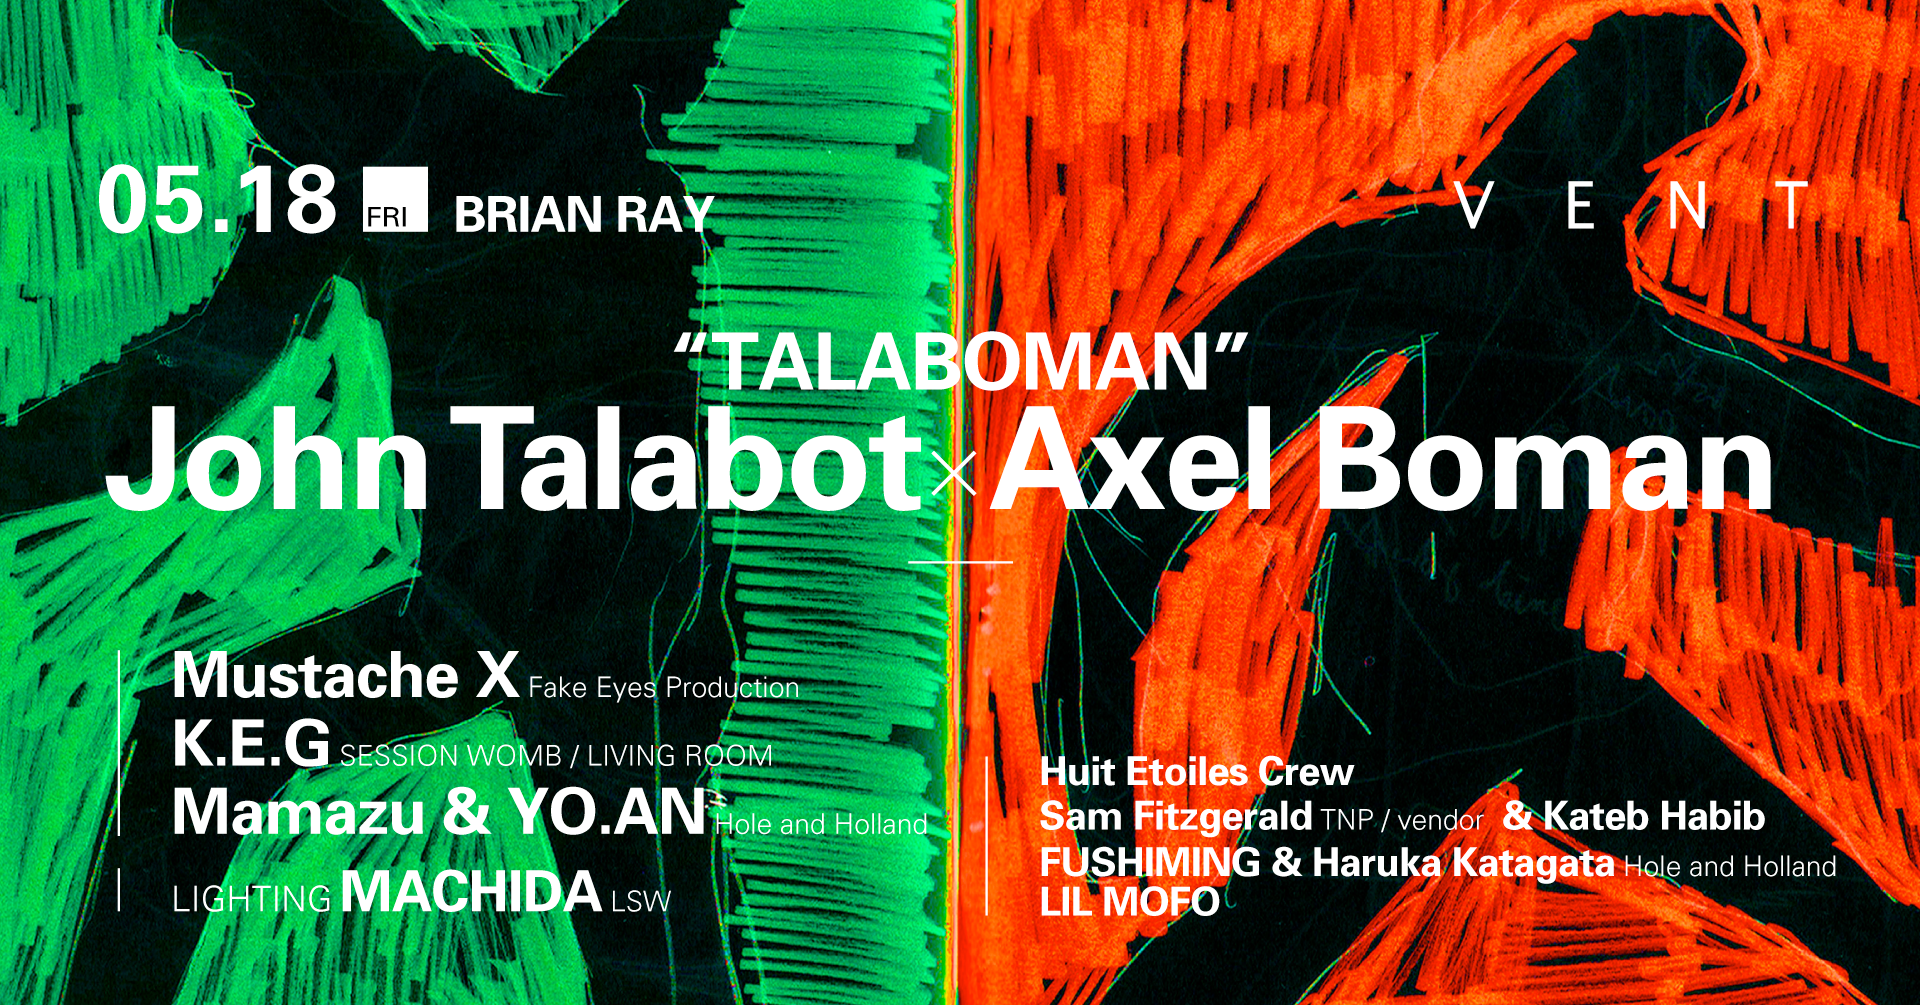 Talaboman at Brian Ray